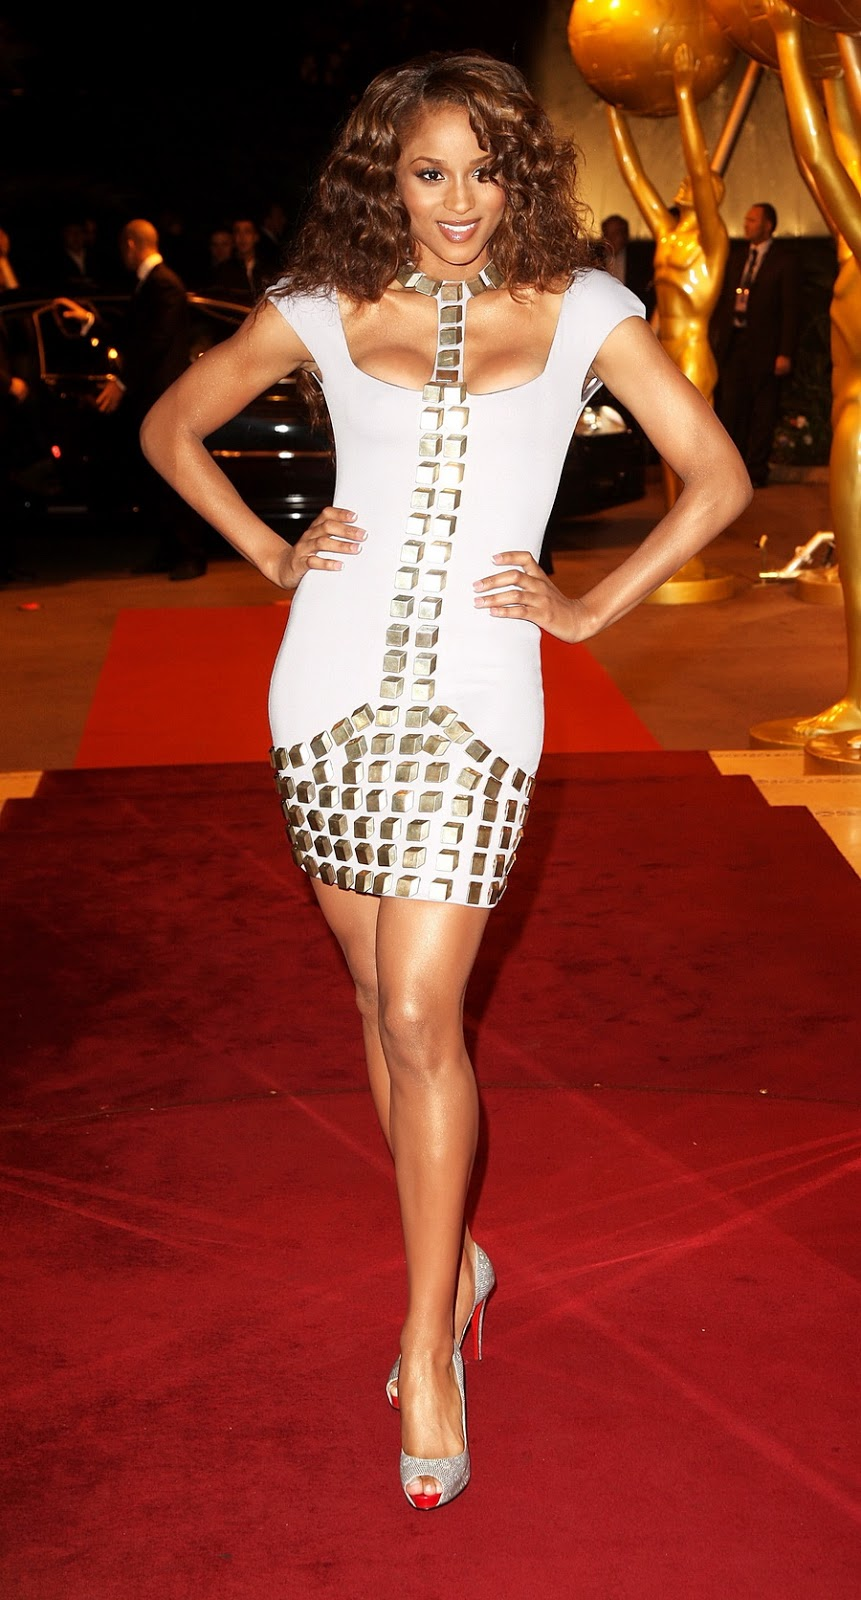 ciara cleavage hq awards arrivals 2007 legs american actress tags